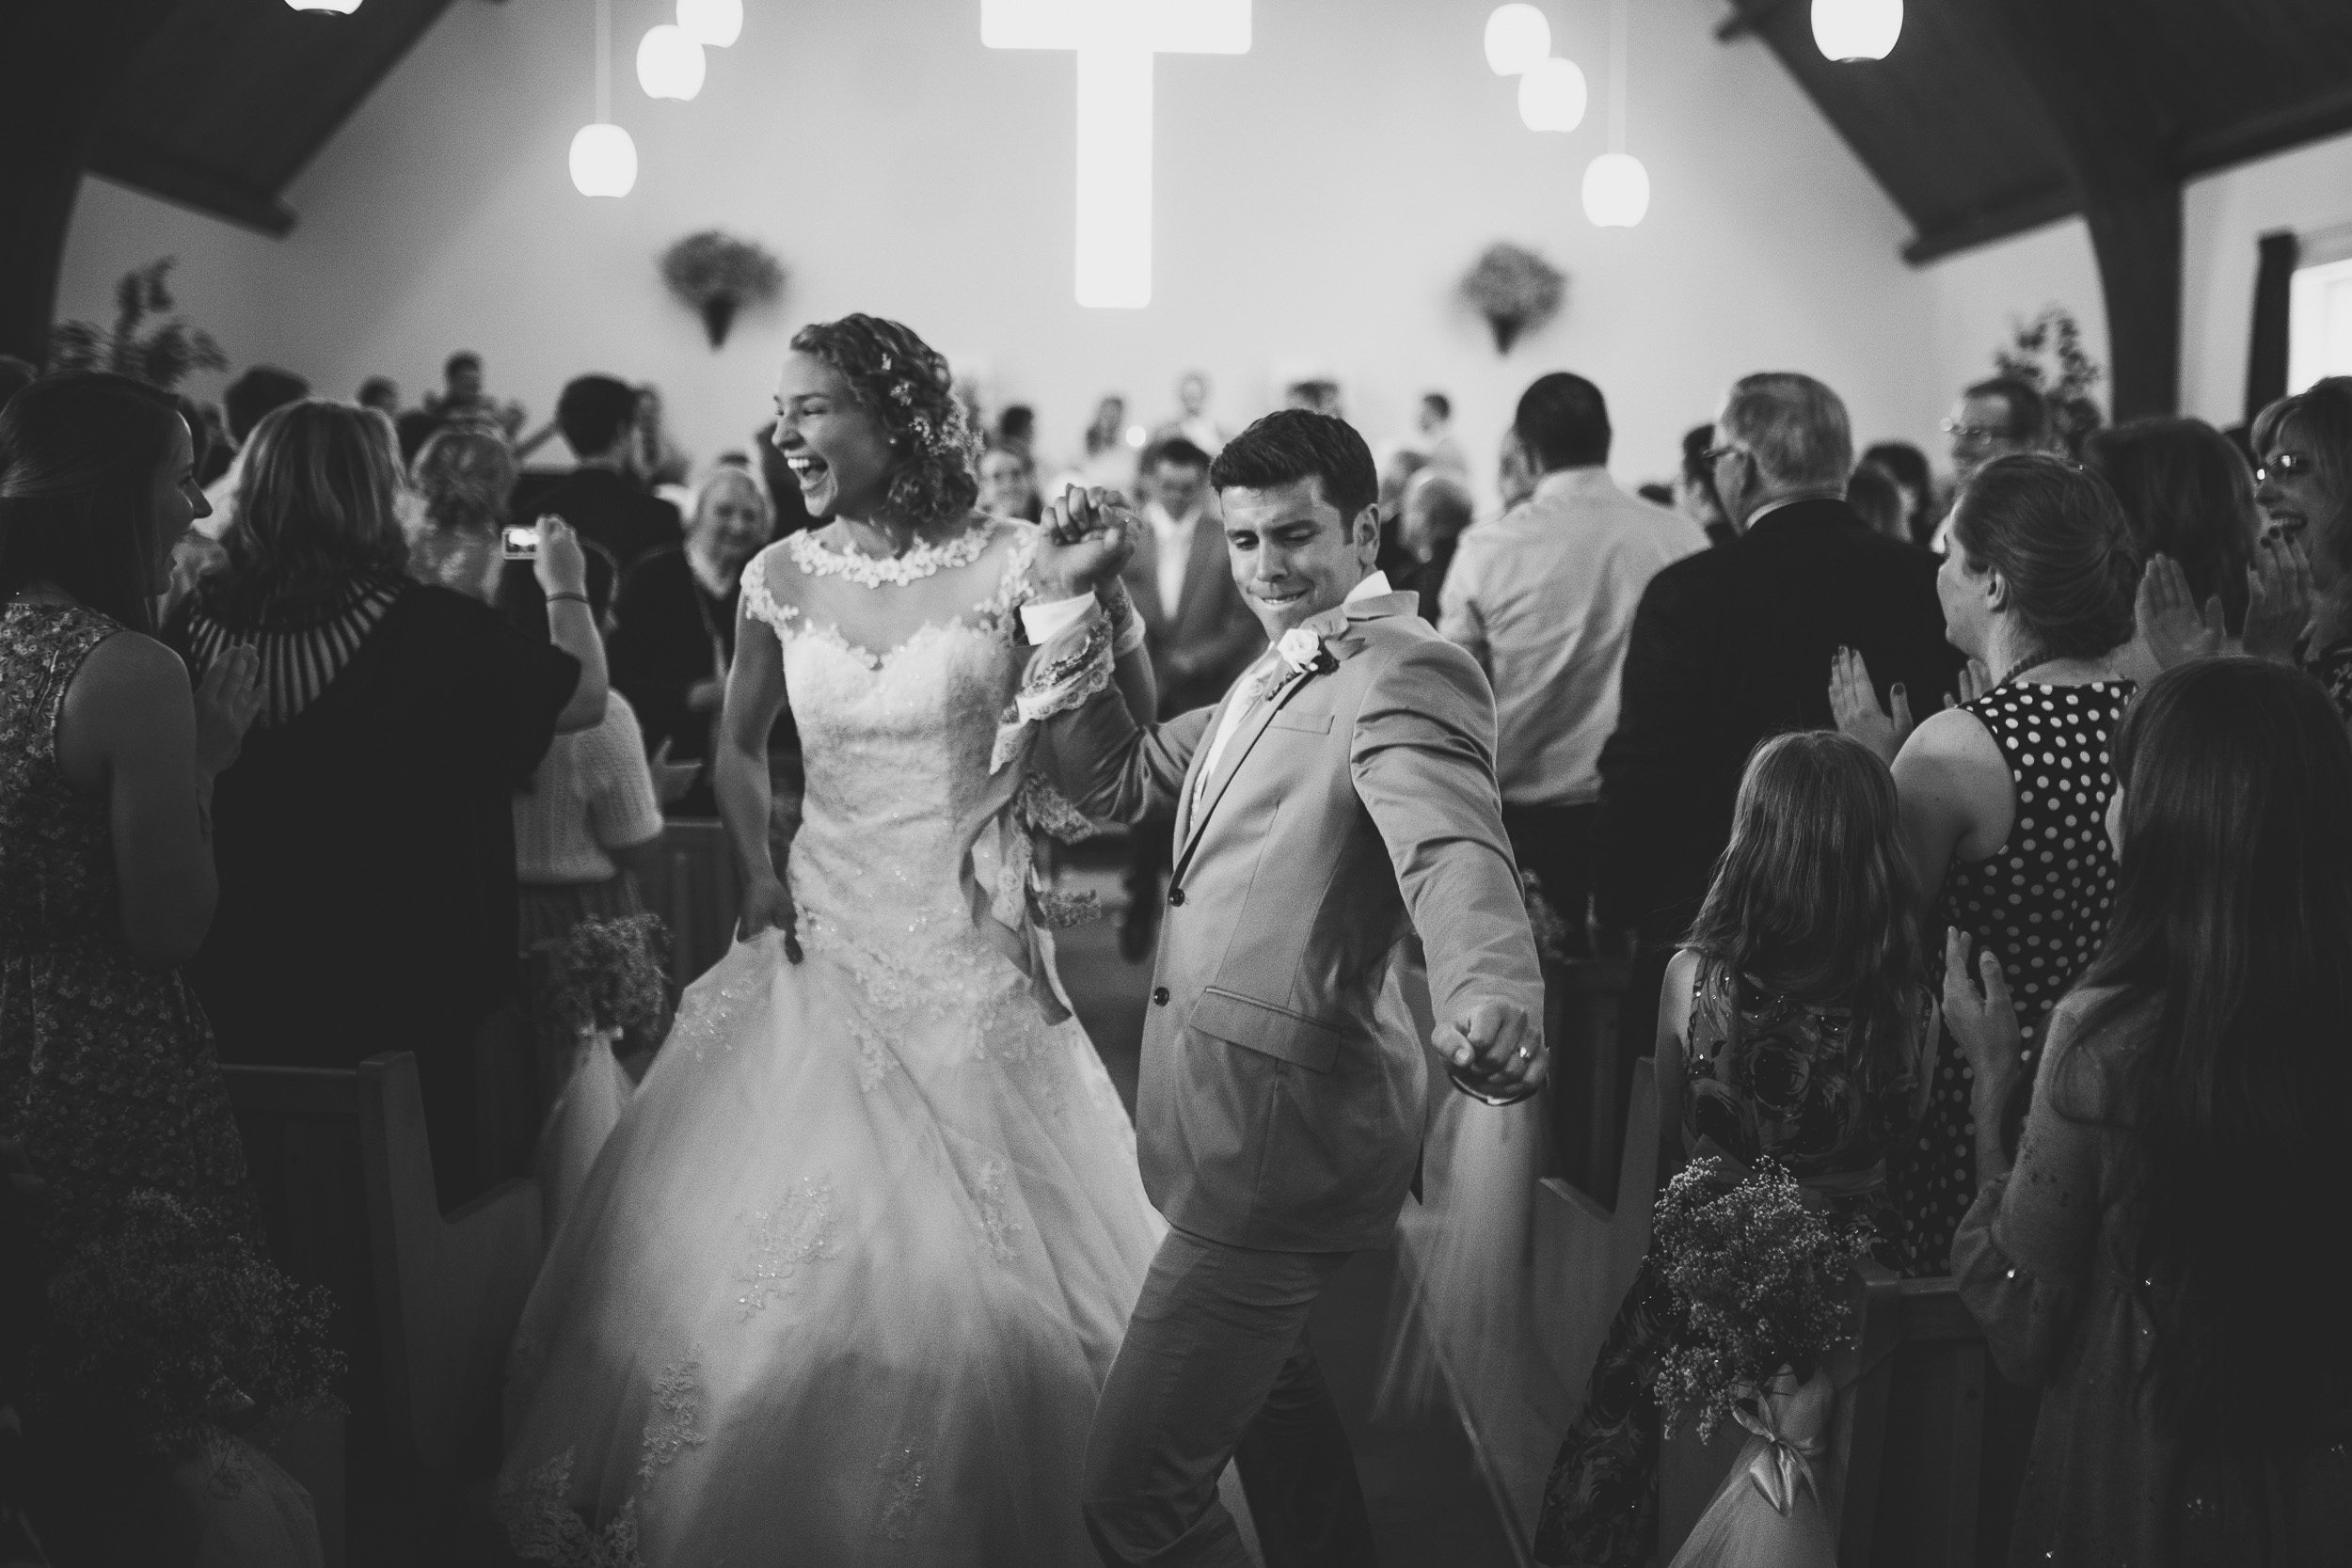 64-Groom_dancing_down_isle.jpg